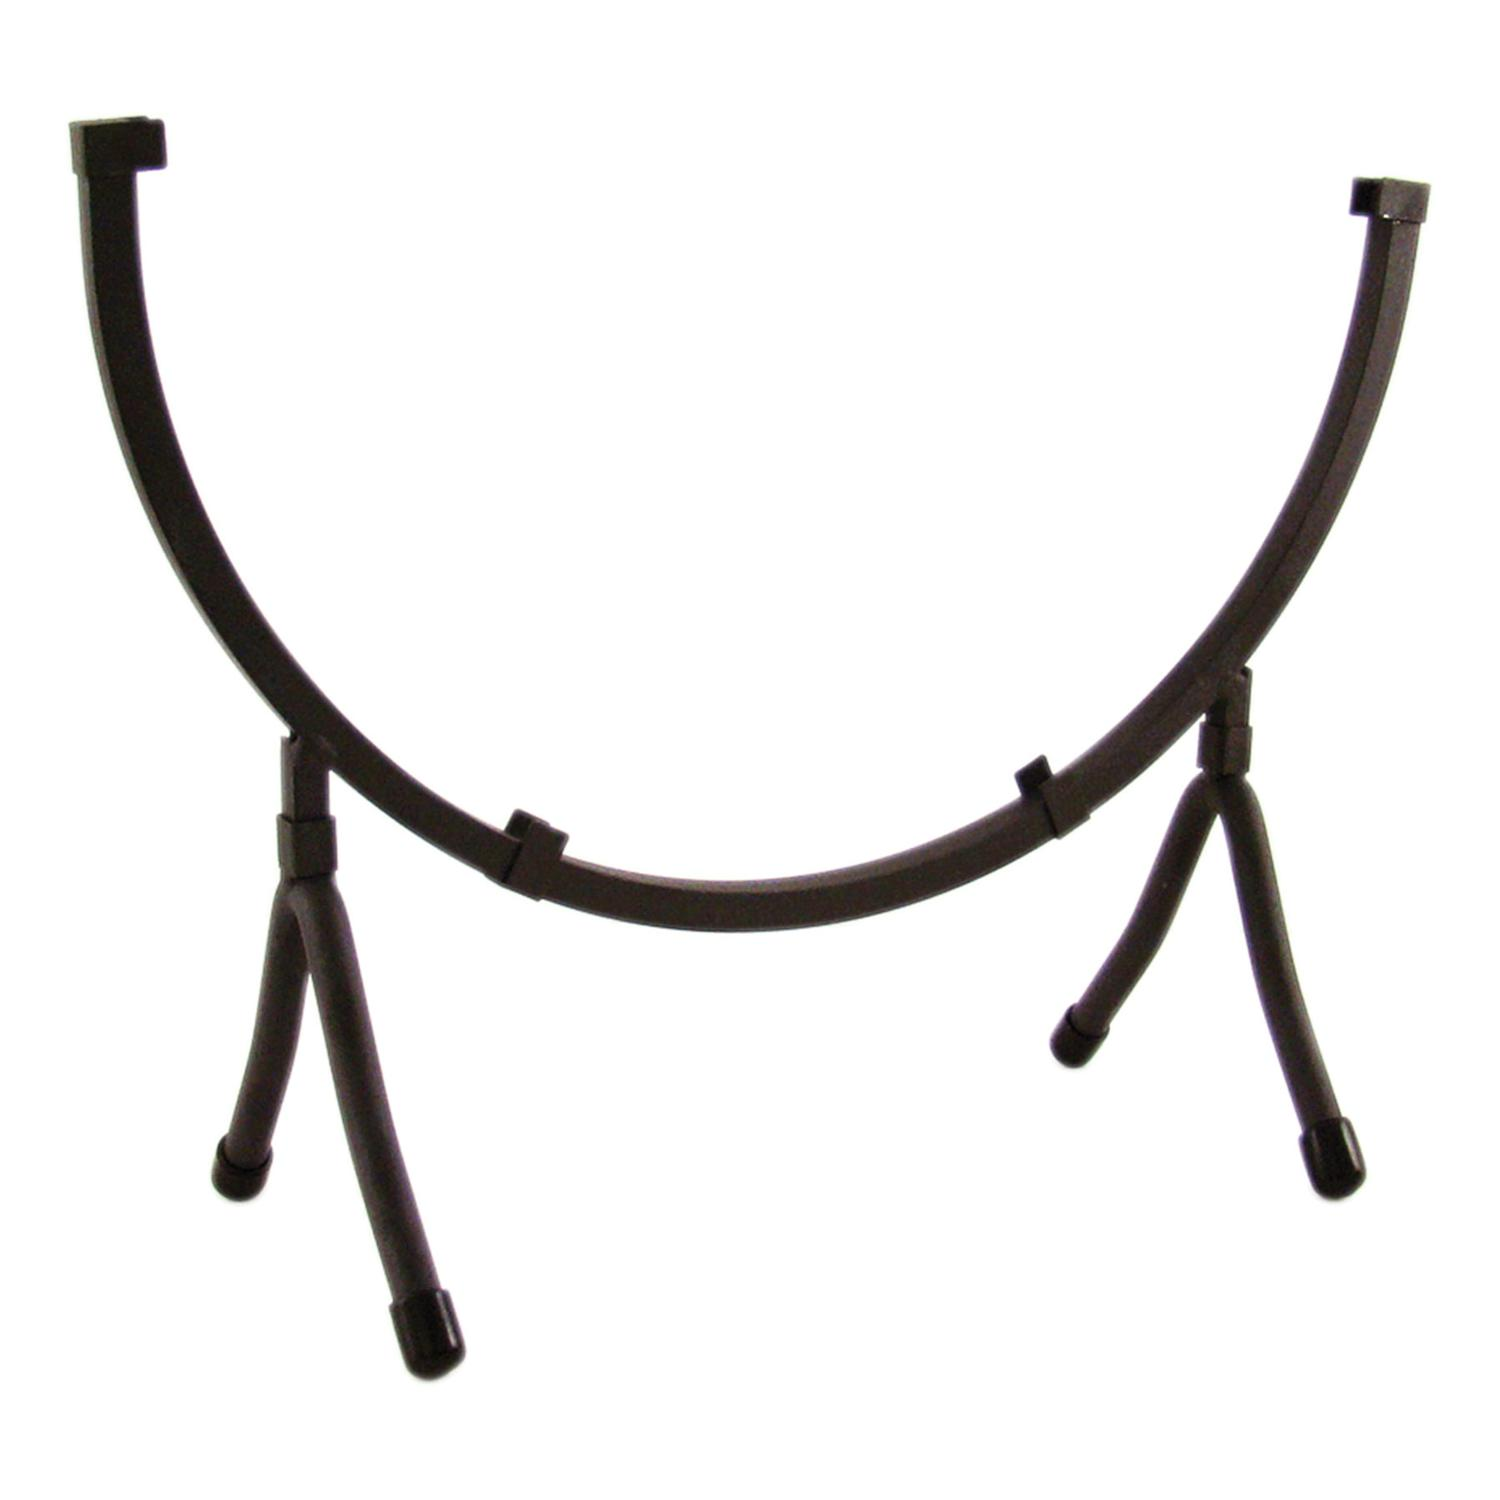 12 Round Black Iron Art Holder